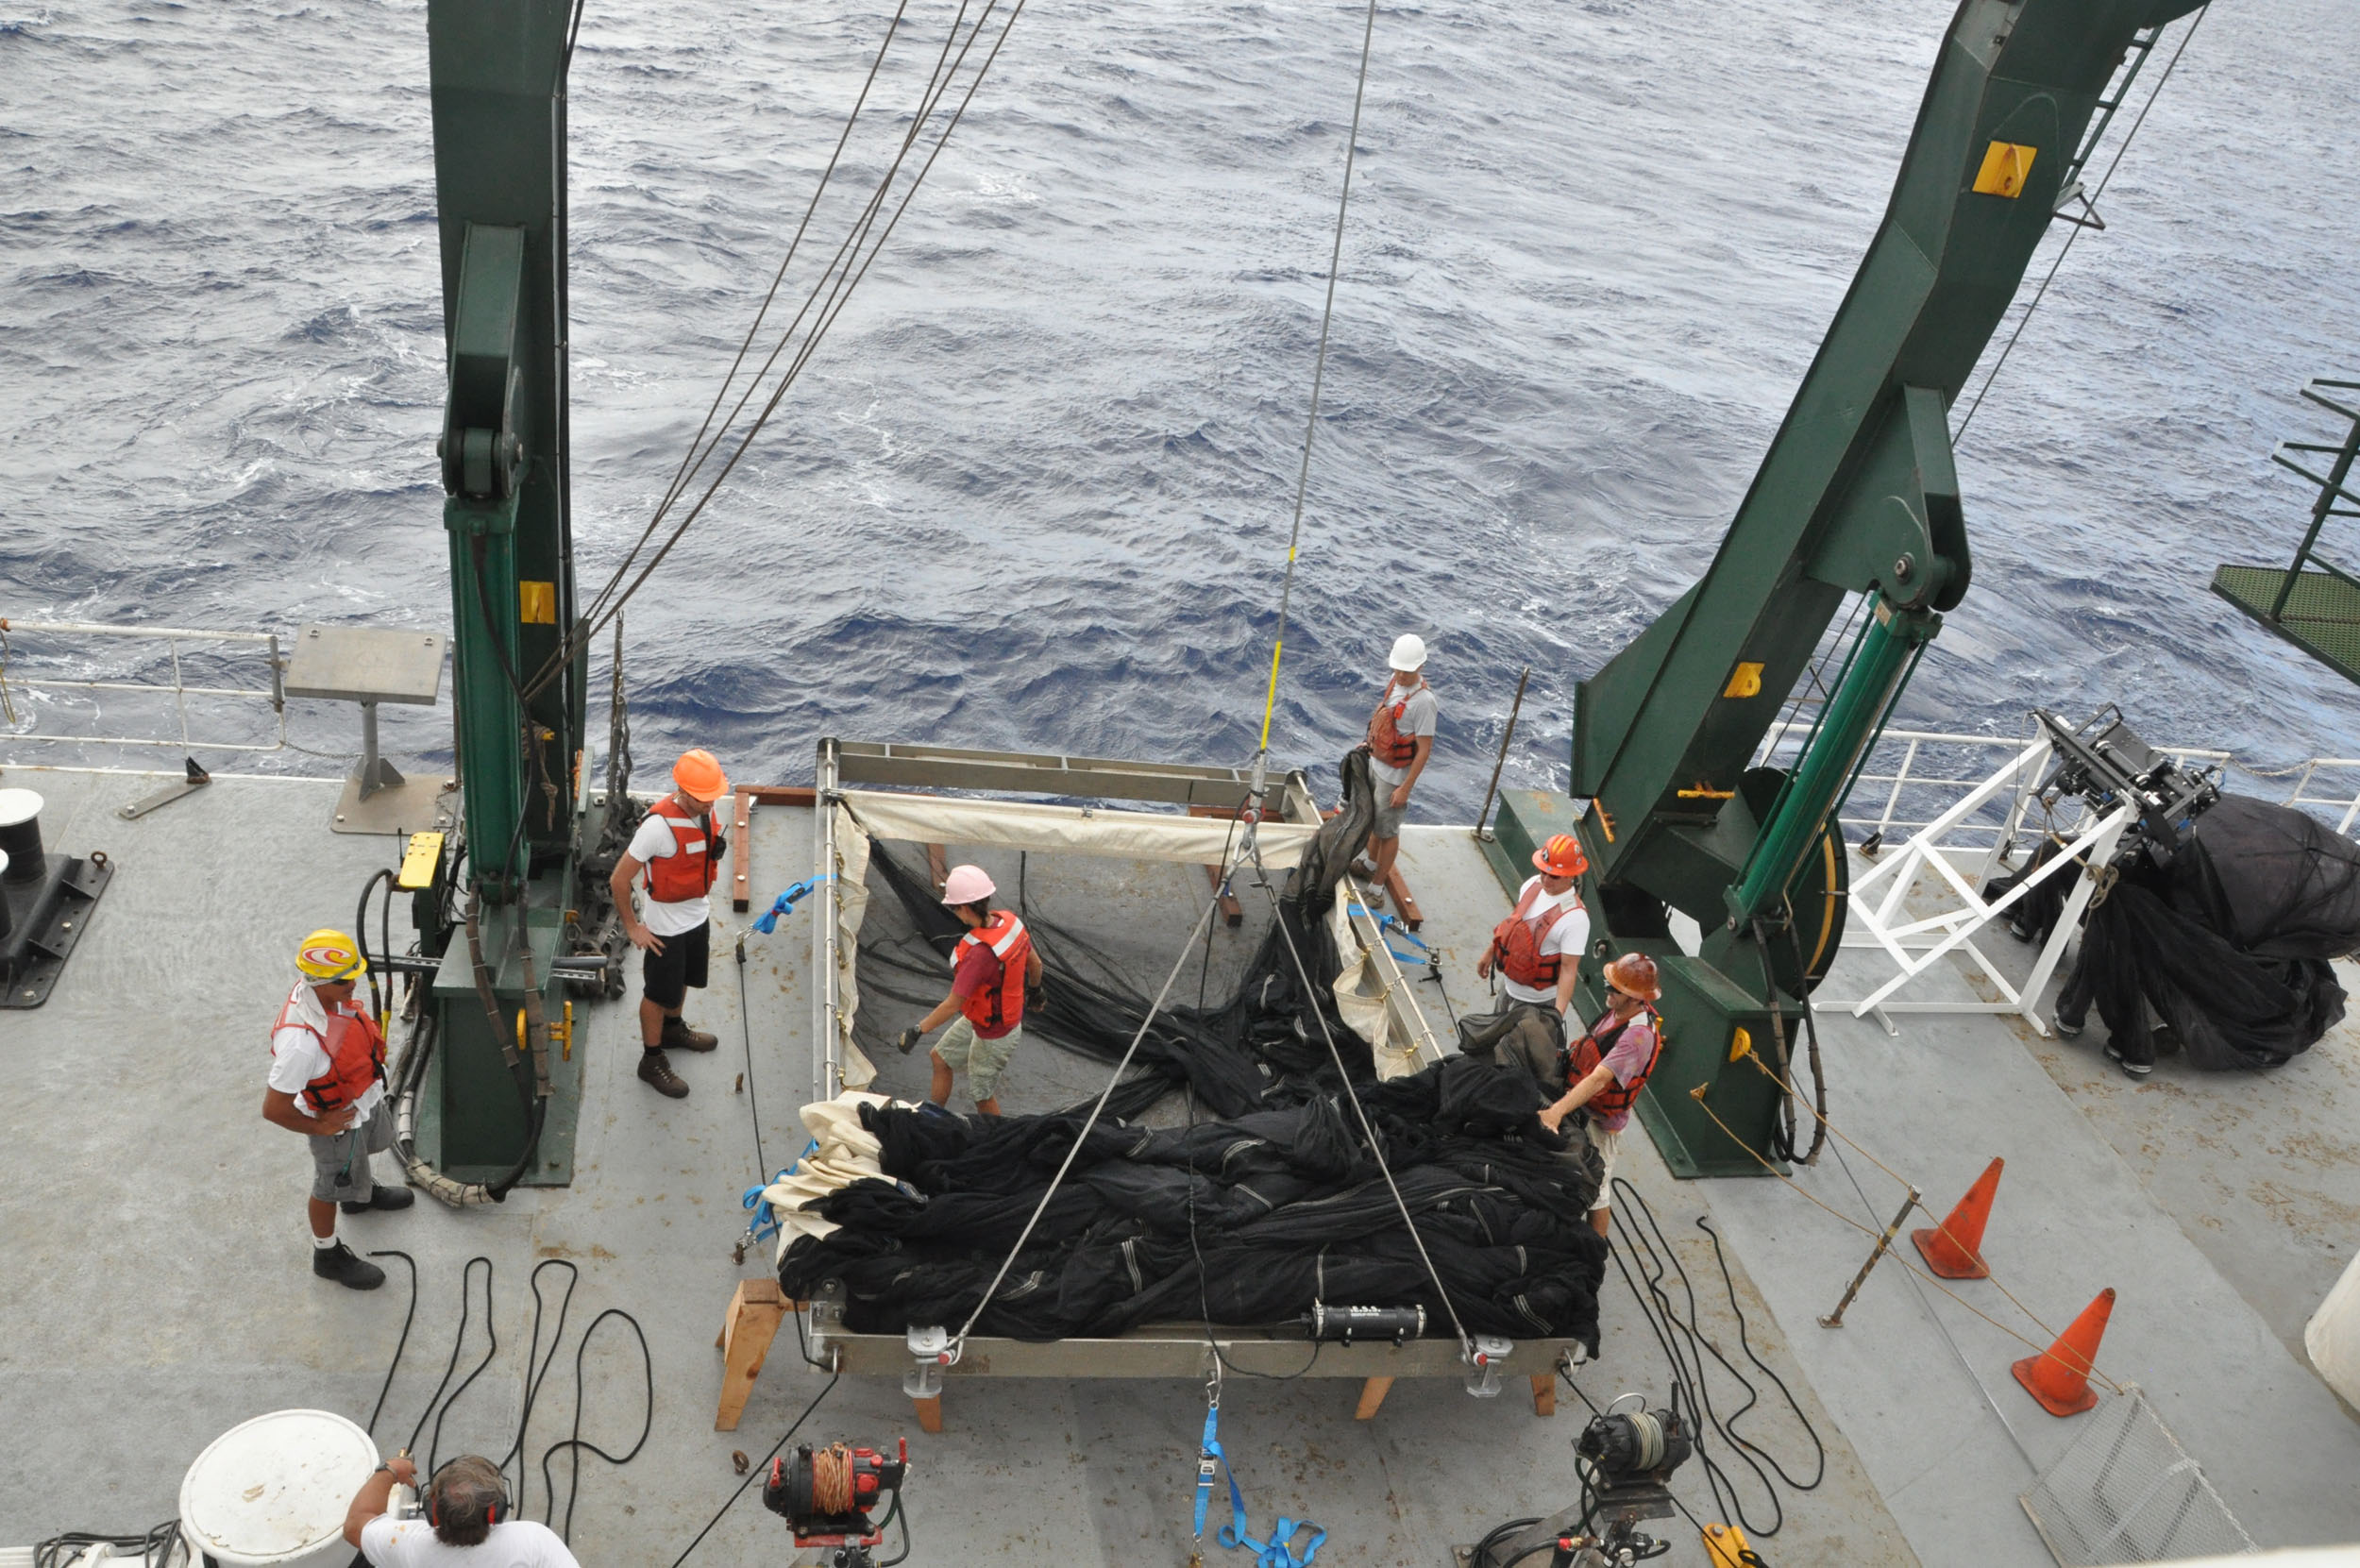 University of Hawaii researchers with a net used to collect nine species of marine fish that feed at different depths in a region near Hawaii called the North Pacific Subtropical Gyre. Image credit: C. Anela Choy